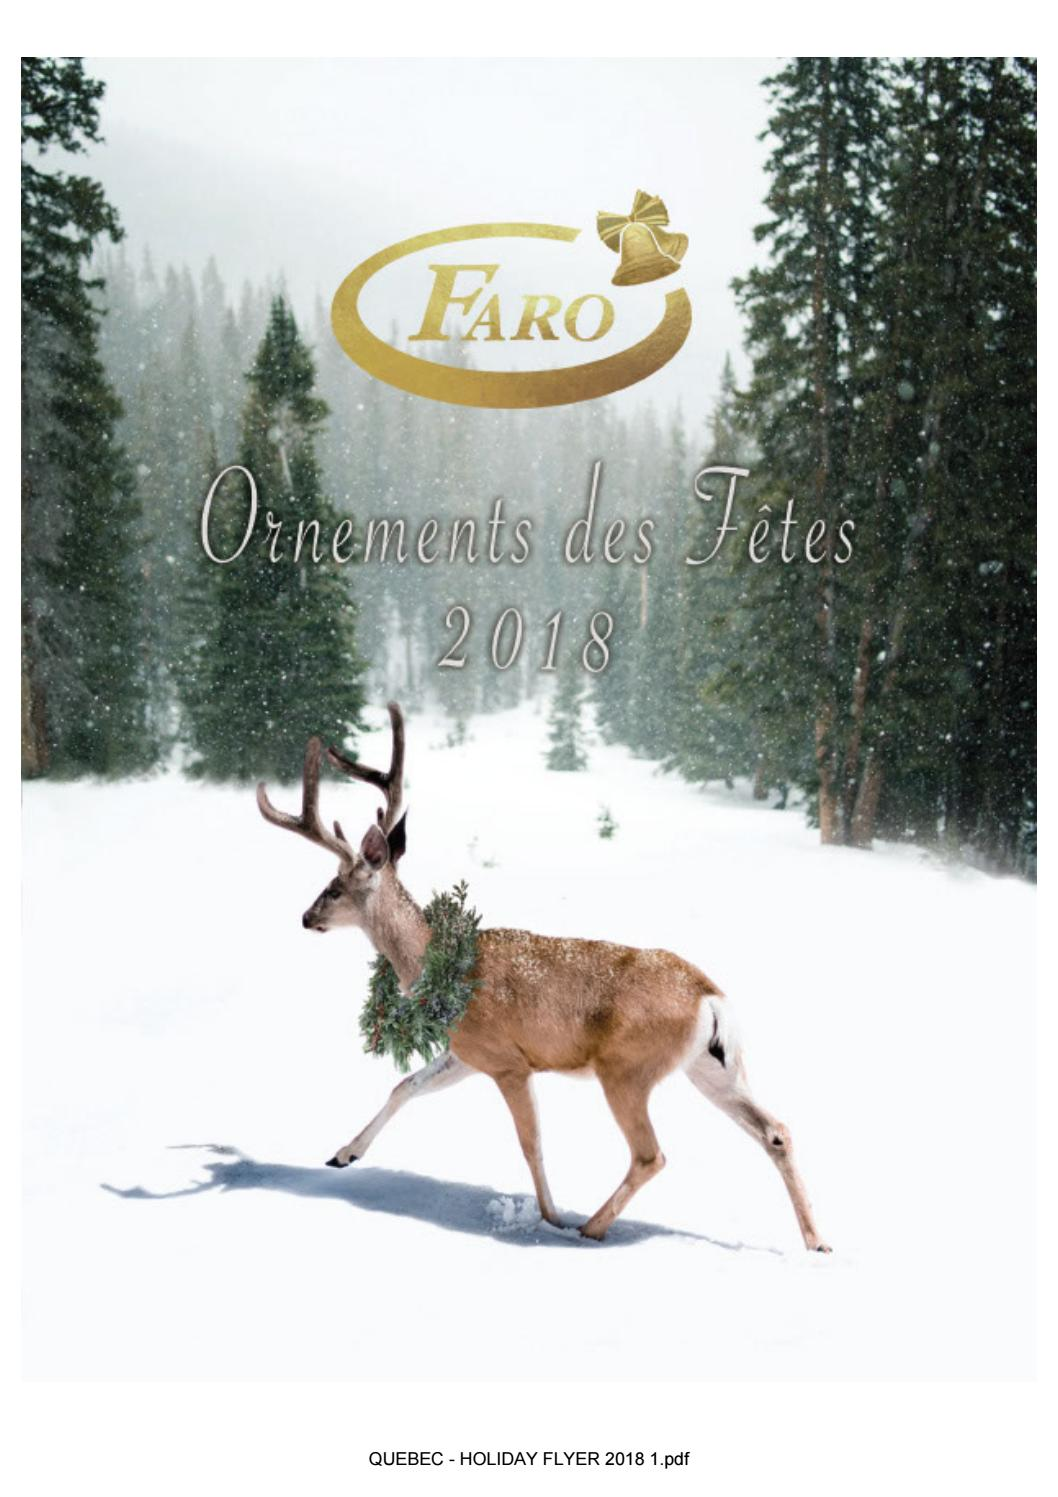 FARO'S HOLIDAY FLYER 2018 (FRENCH CANADIAN!) by faroproducts1 - issuu